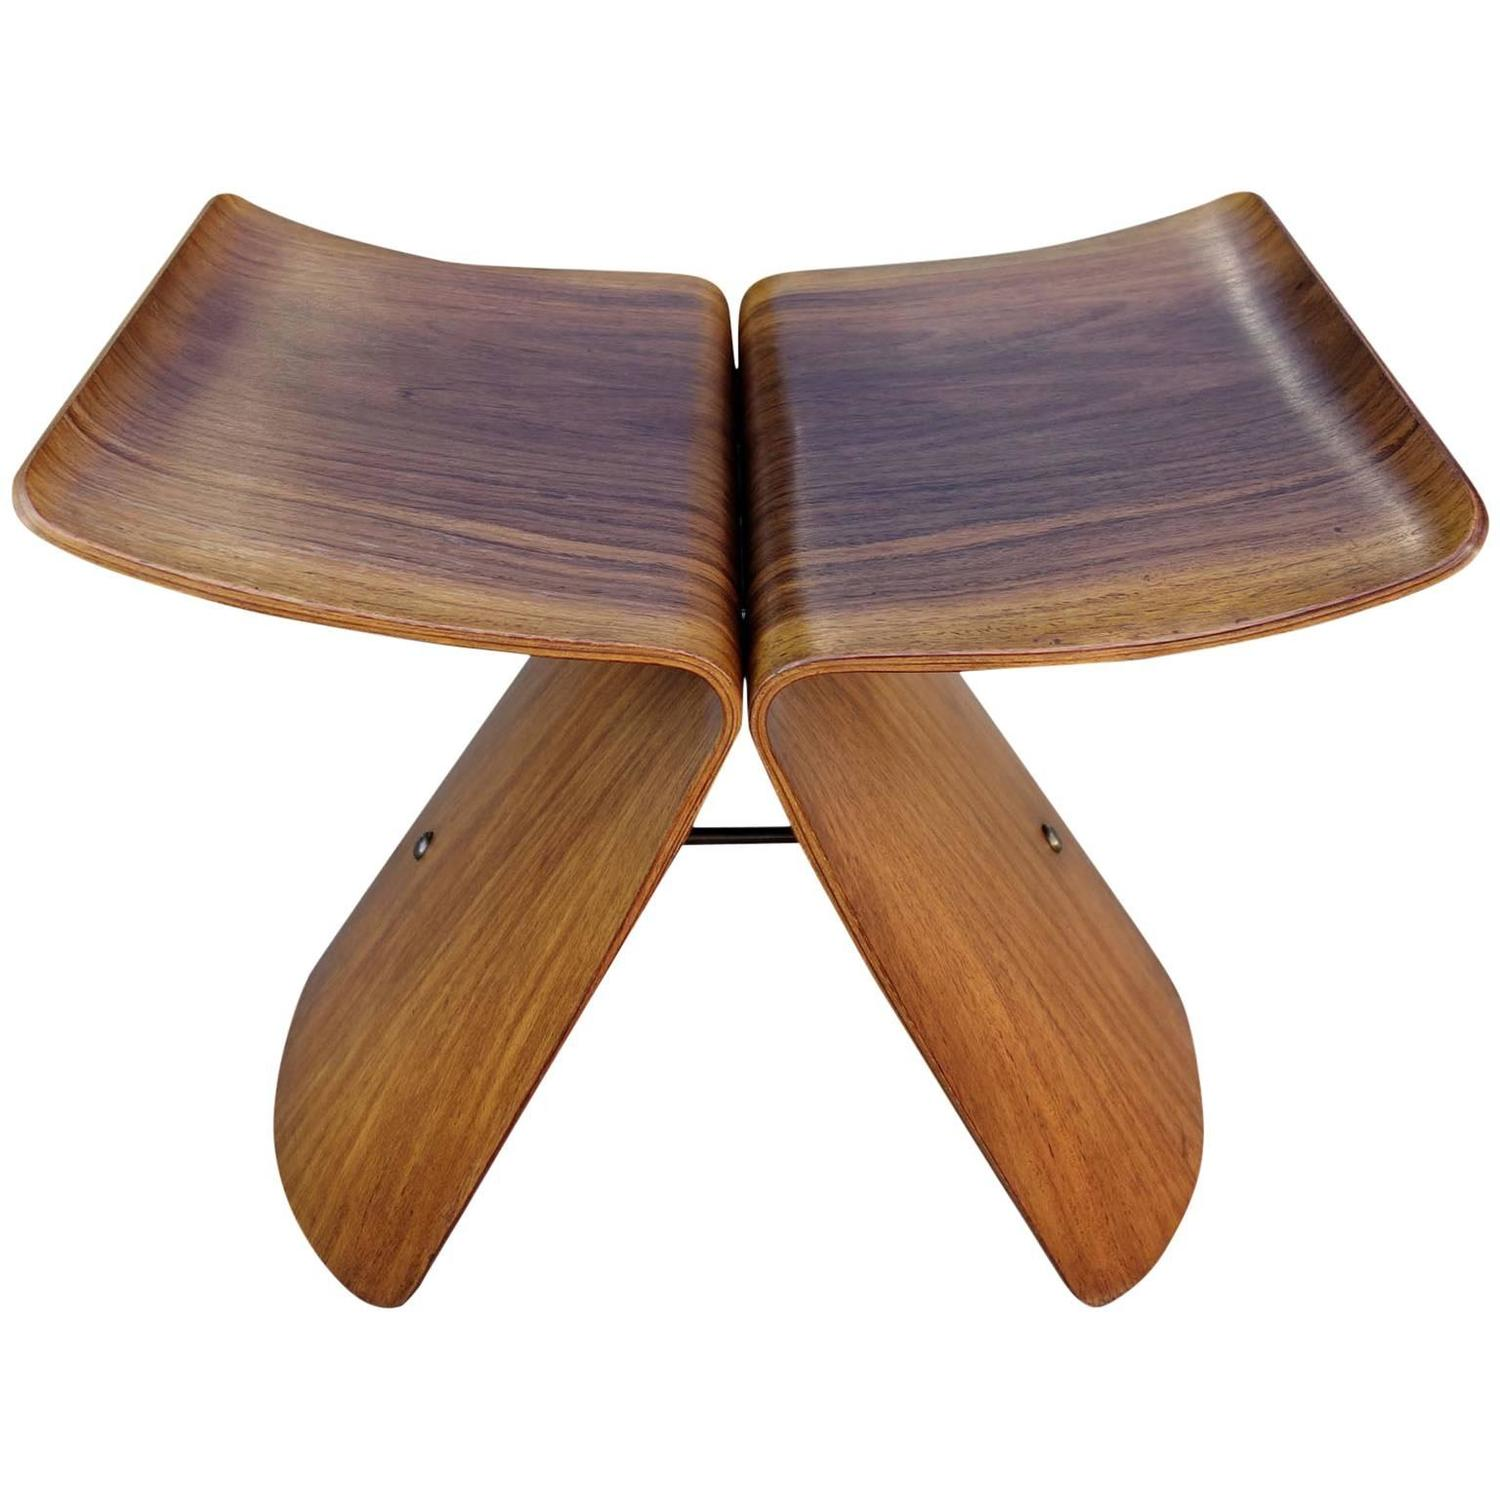 Butterfly chair sori yanagi - Museum Quality Mid Century Sori Yanagi Quot Butterfly Stool Quot